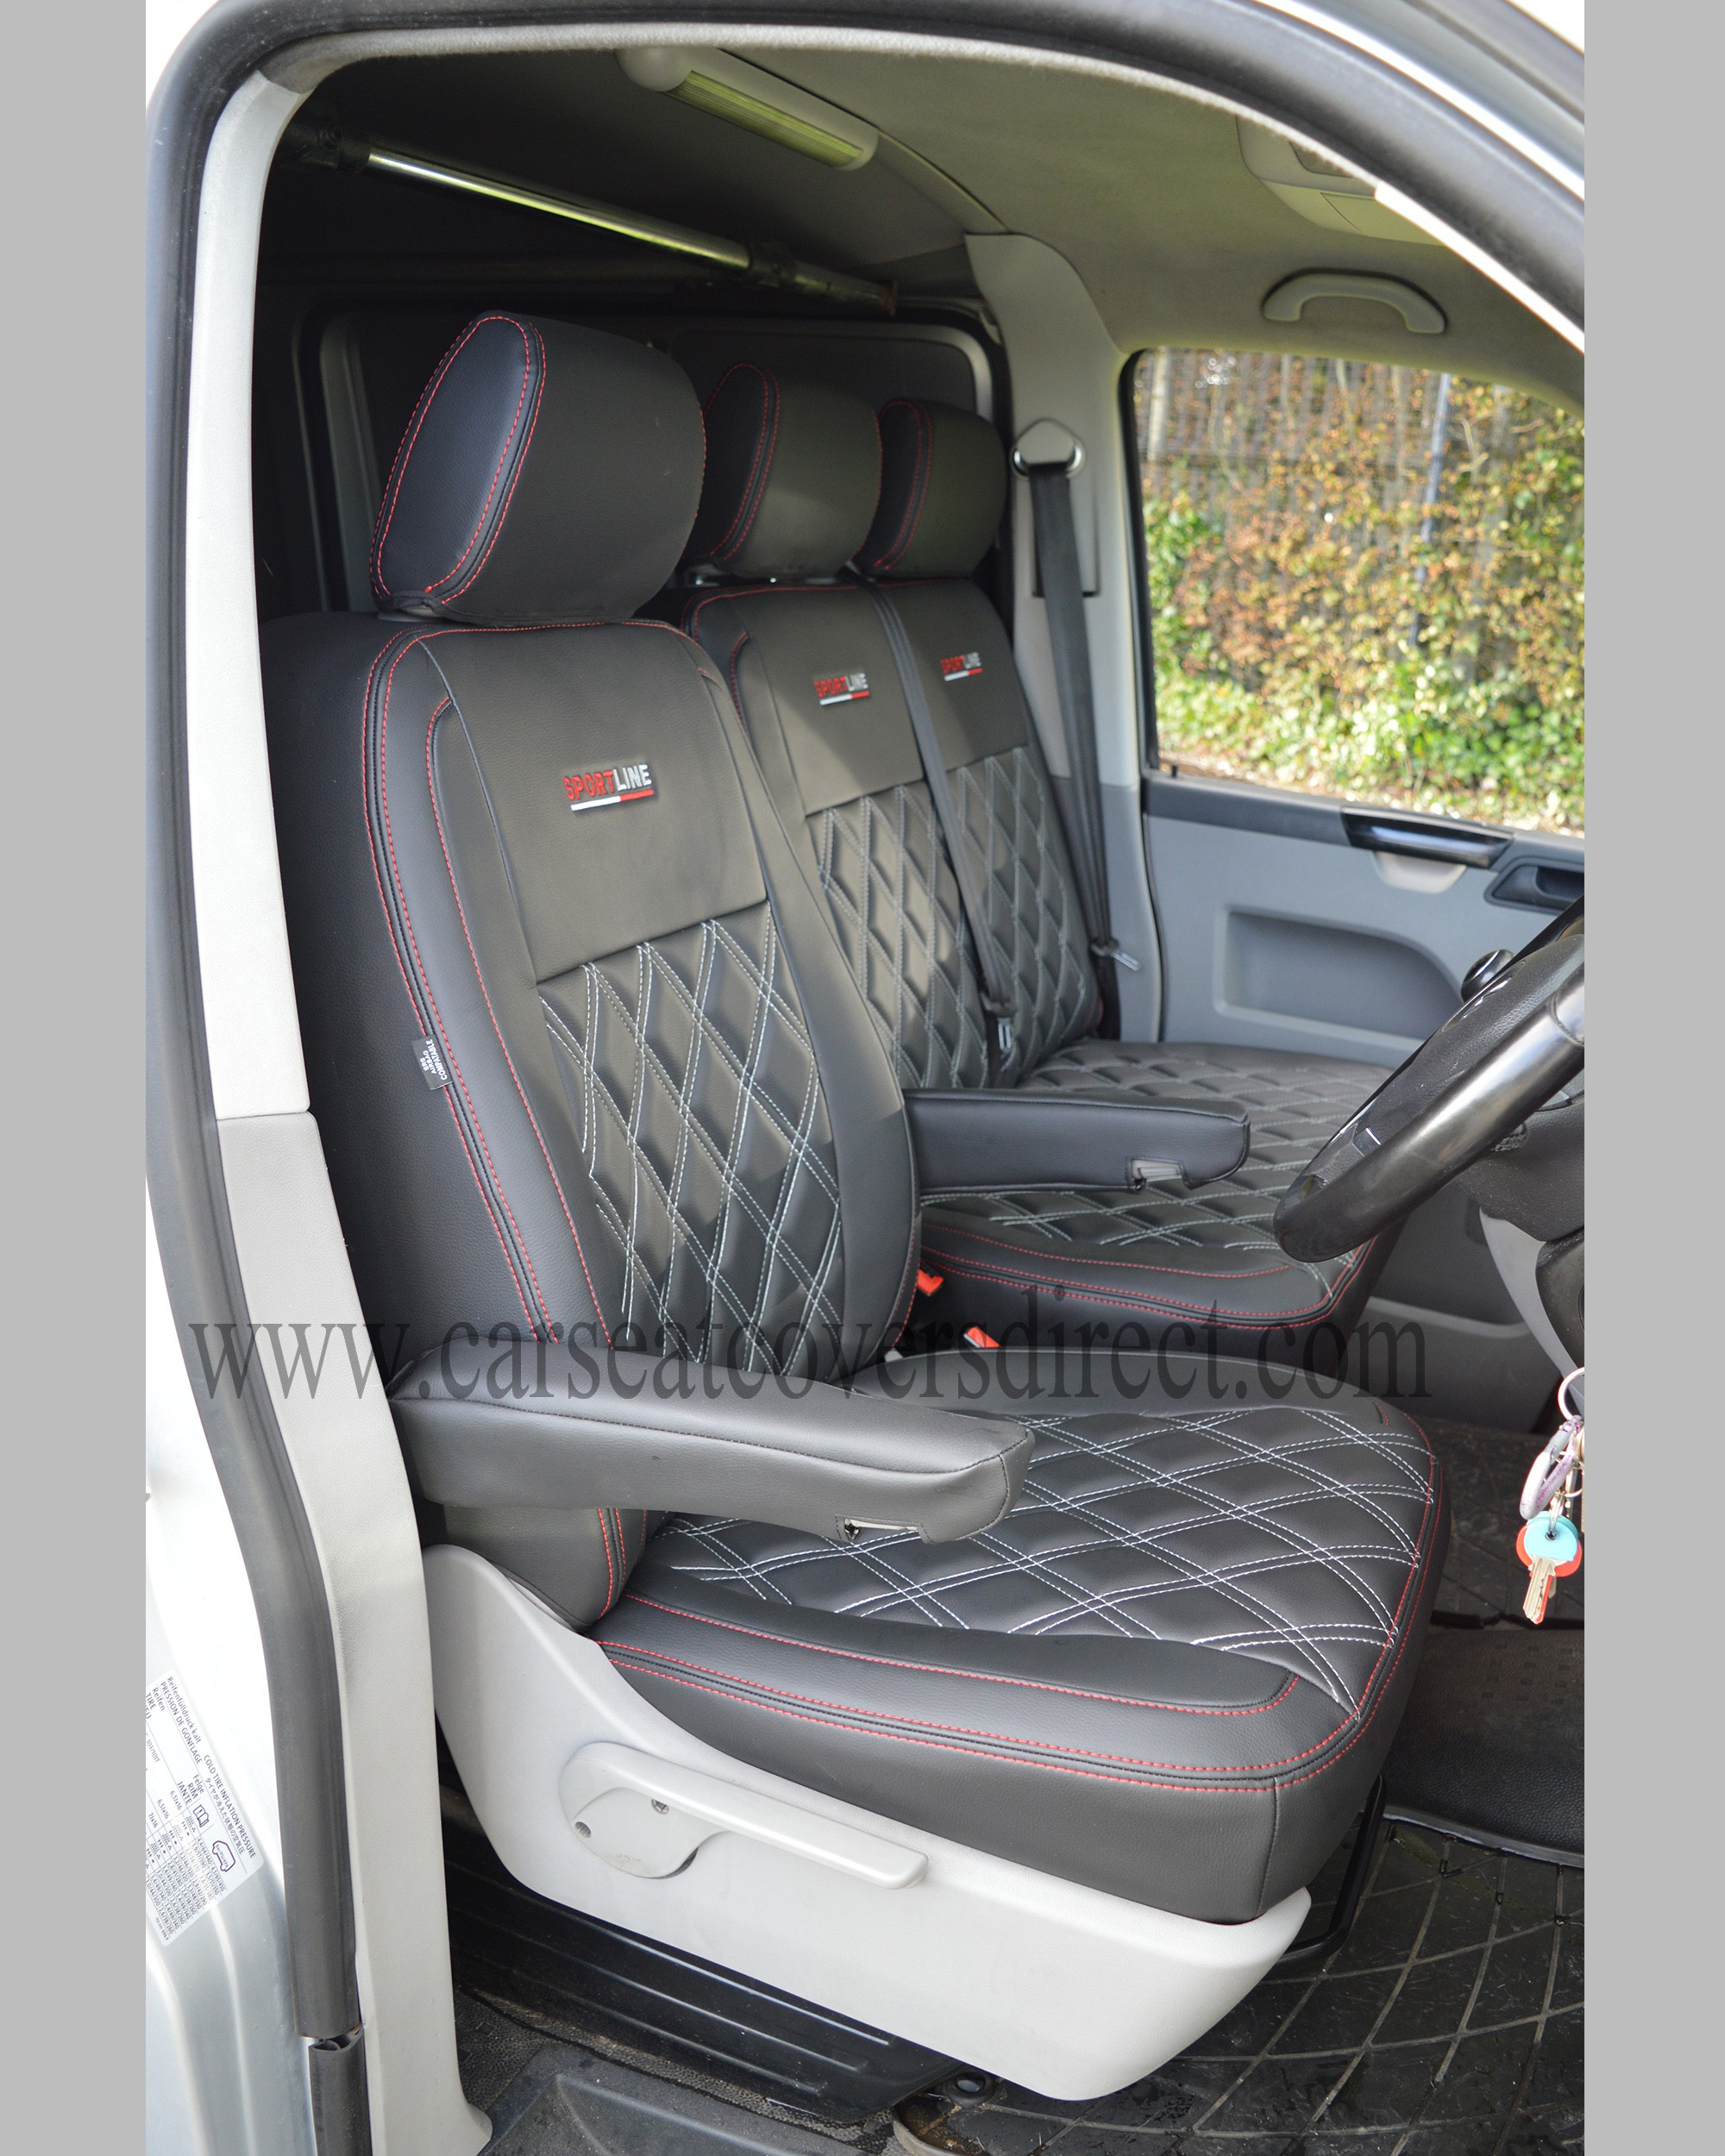 VW T5 front seats with custom charcoal grey seat covers